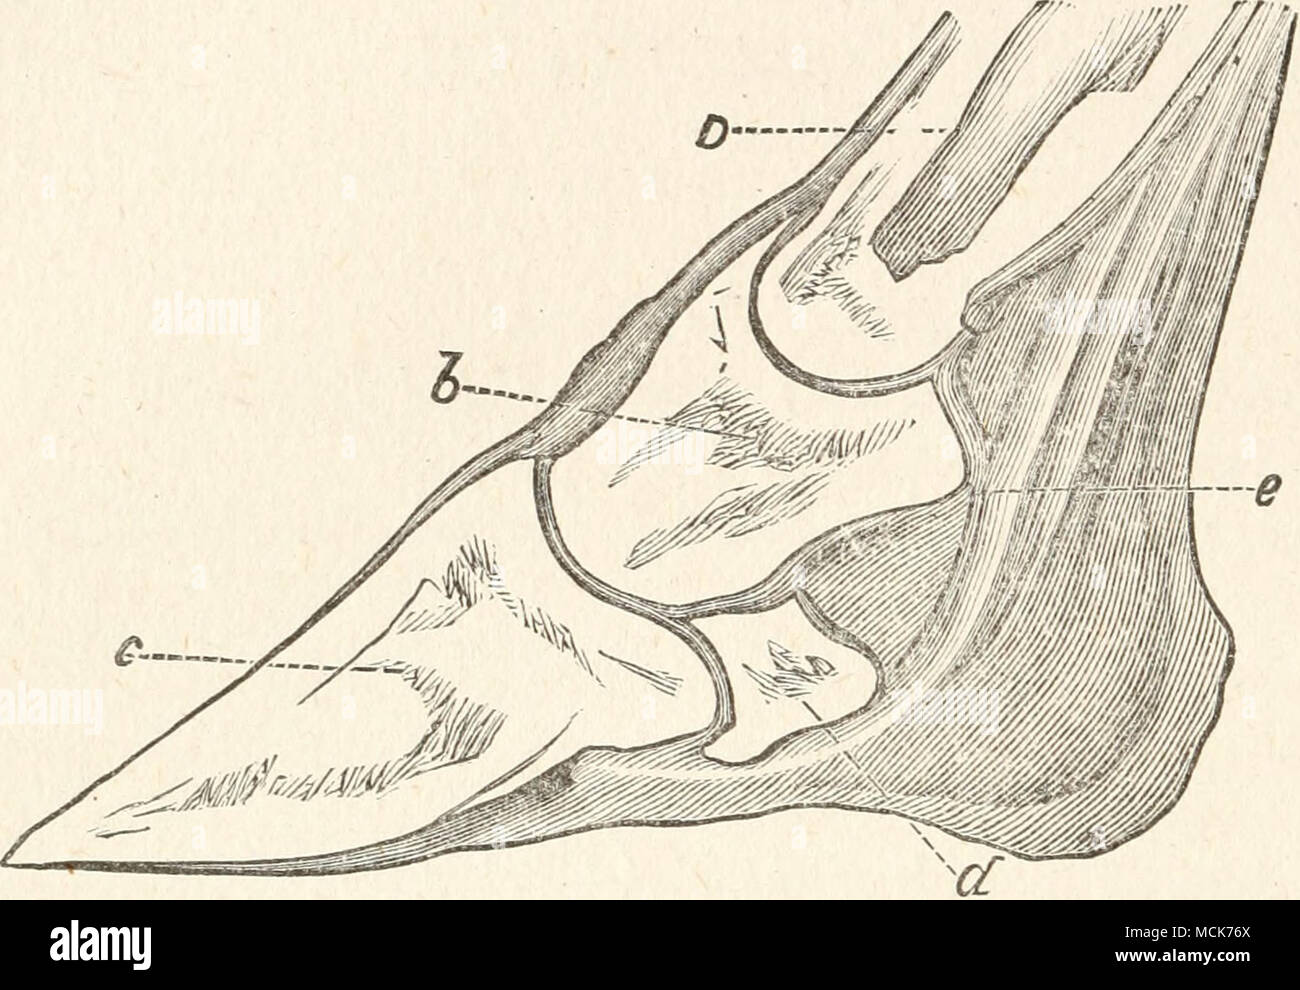 FIG. 21.—A SECTION OF THE HORSE's FOOT. Commencing above, the